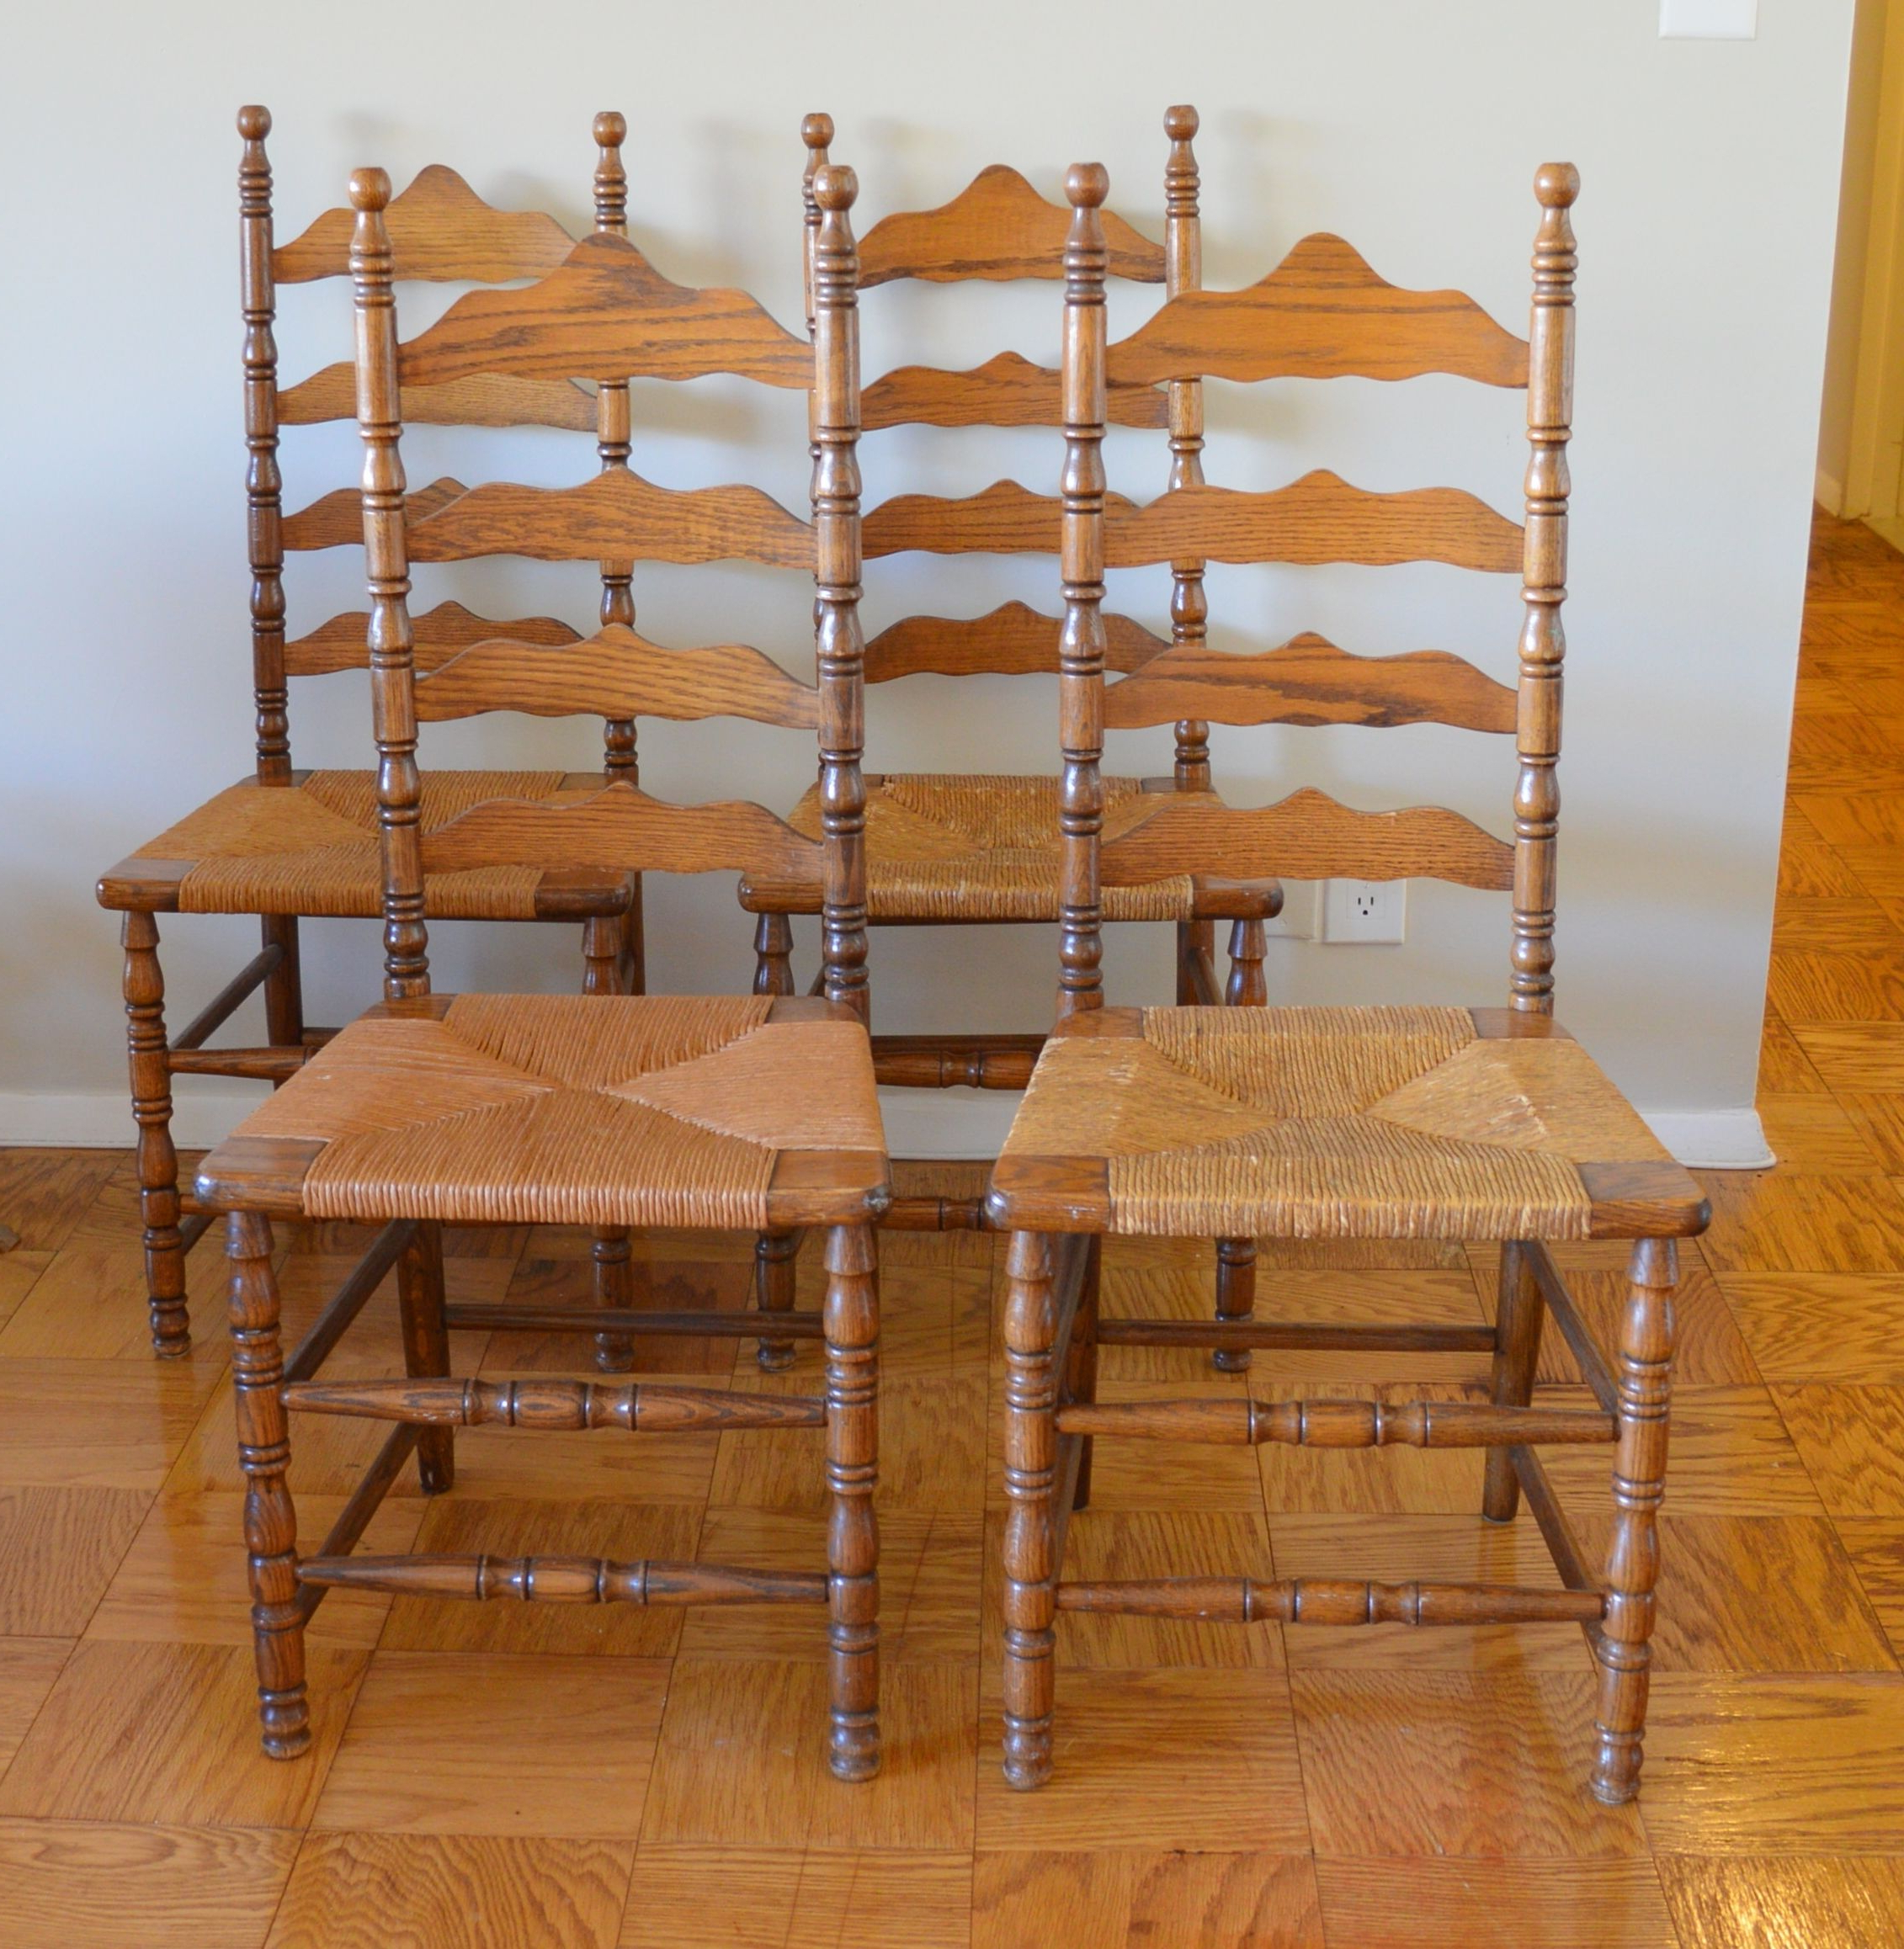 Newest Picked Up These 4 Vintage Ladder Back Chairsthe Boling Intended For Alamo Transitional 4 Seating Double Drop Leaf Round Casual Dining Tables (View 19 of 19)